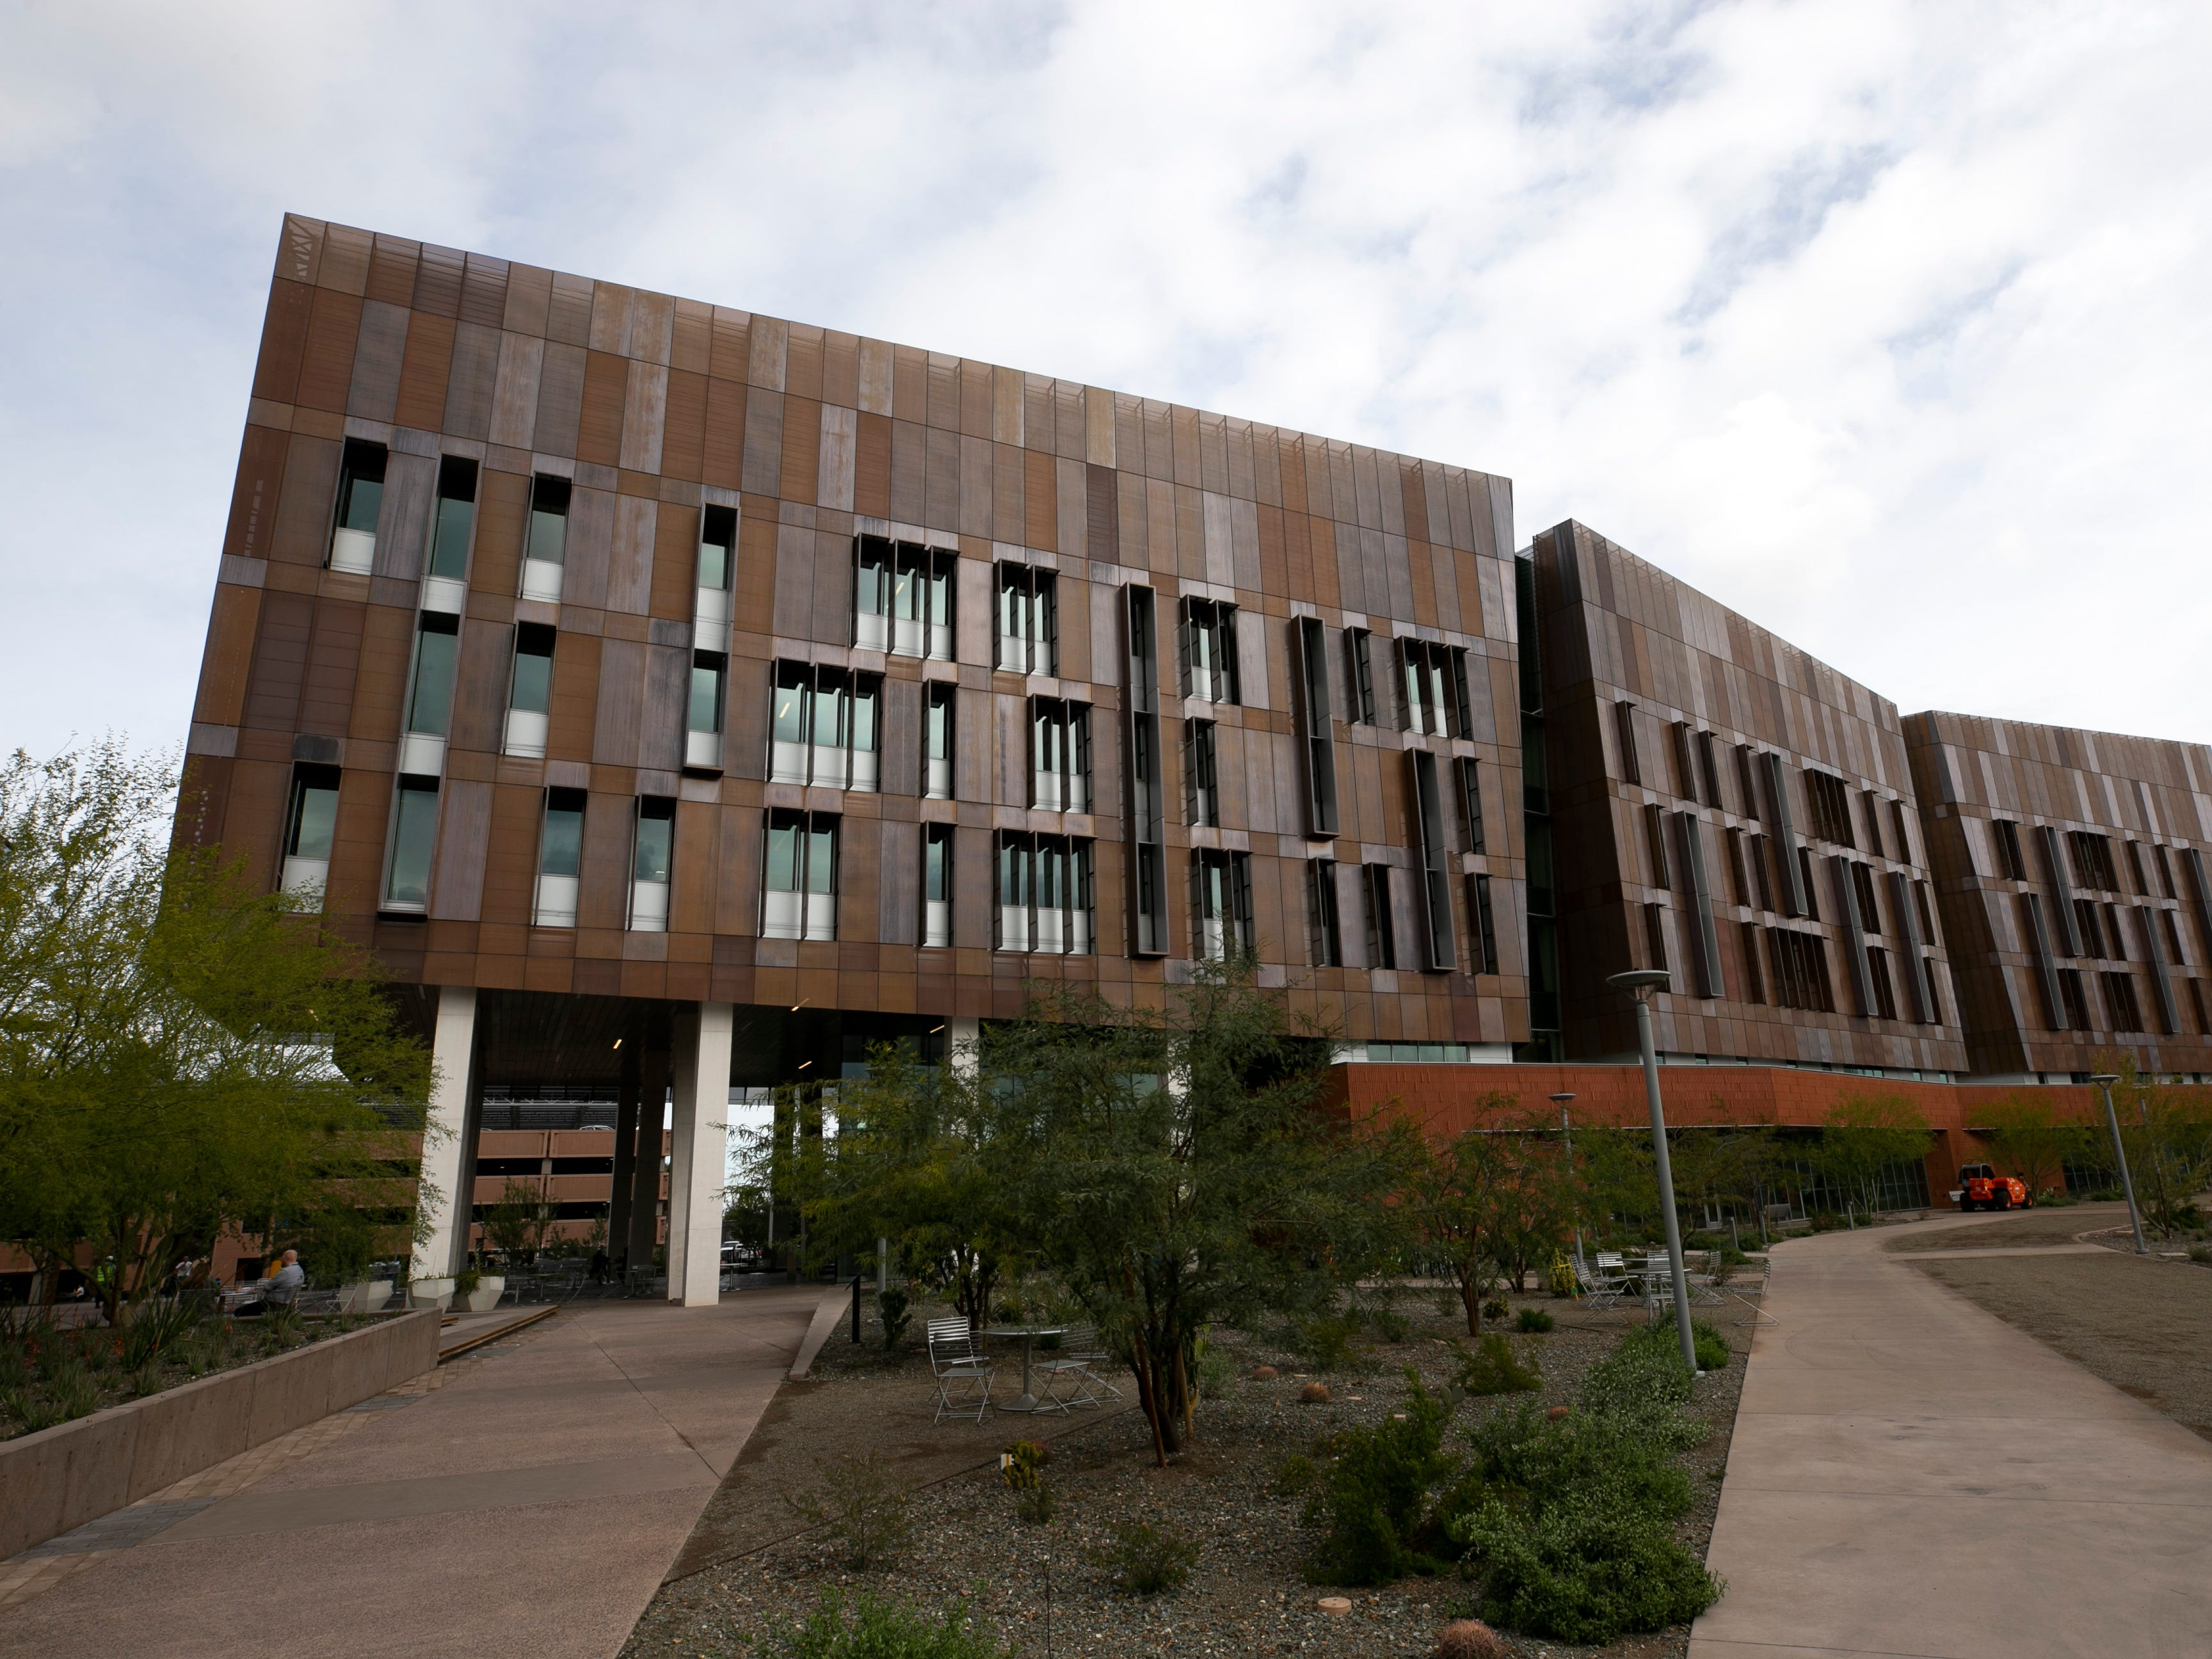 The Biodesign Institute, building C on ASU's Tempe campus as seen on Feb. 15, 2019. It opened in 2018.